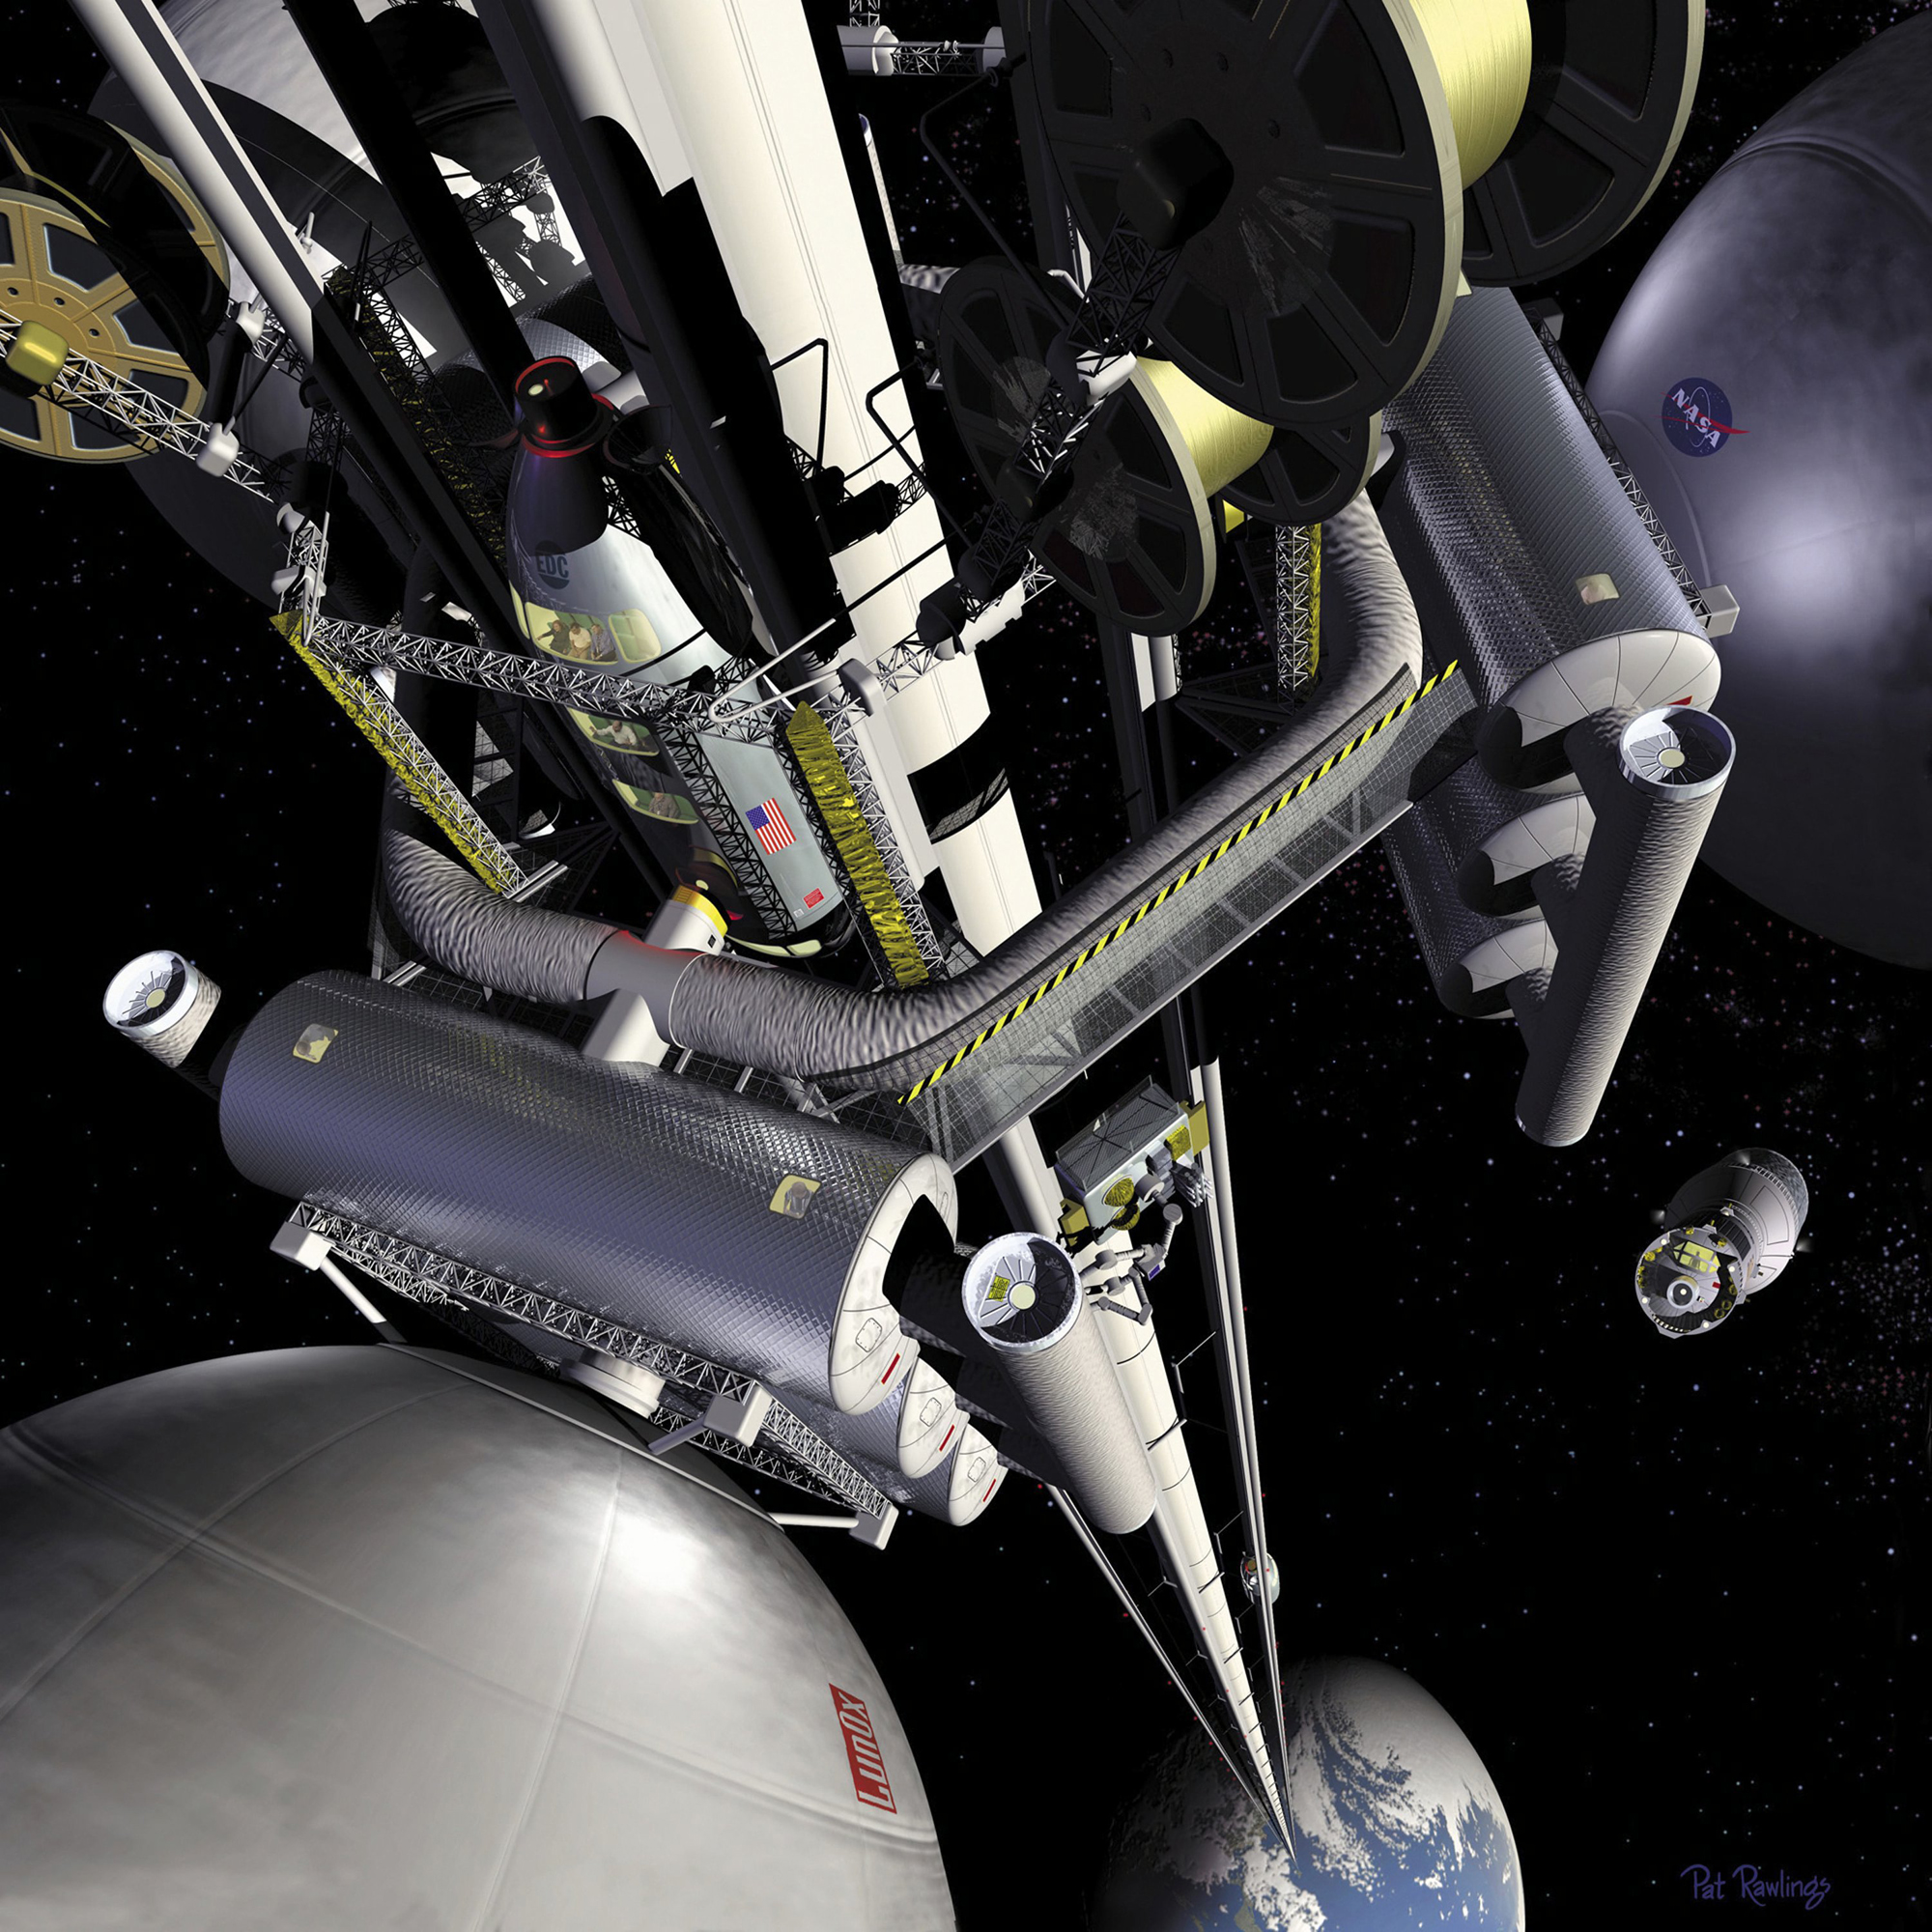 Japanese Company Aims for Space Elevator by 2050